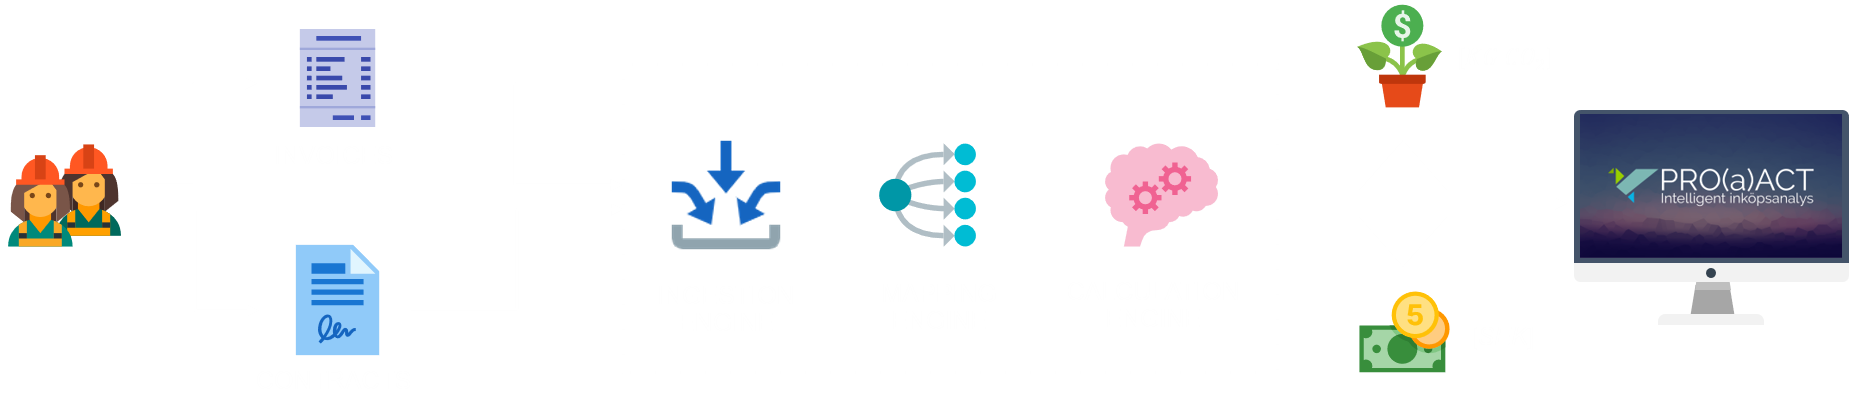 carbon chaser process